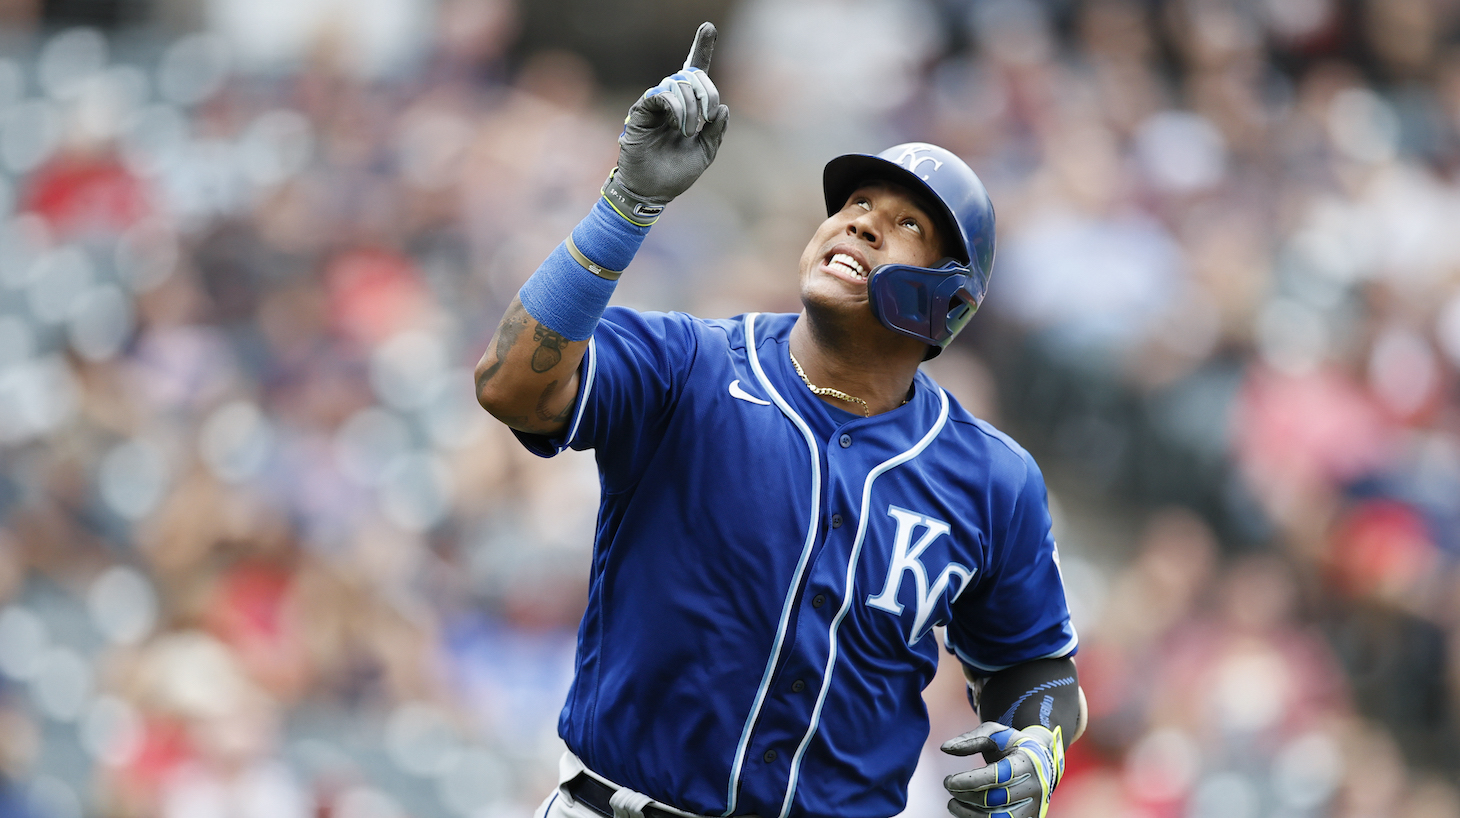 CLEVELAND, OH - SEPTEMBER 20: Salvador Perez #13 of the Kansas City Royals celebrates after hitting a two run home run off Triston McKenzie #24 of the Cleveland Indians in the fifth inning during game one of a doubleheader at Progressive Field on September 20, 2021 in Cleveland, Ohio. Perez hit his 46th home run off the season setting a record for home runs by a catcher.(Photo by Ron Schwane/Getty Images) *** Local Caption *** Salvador Perez